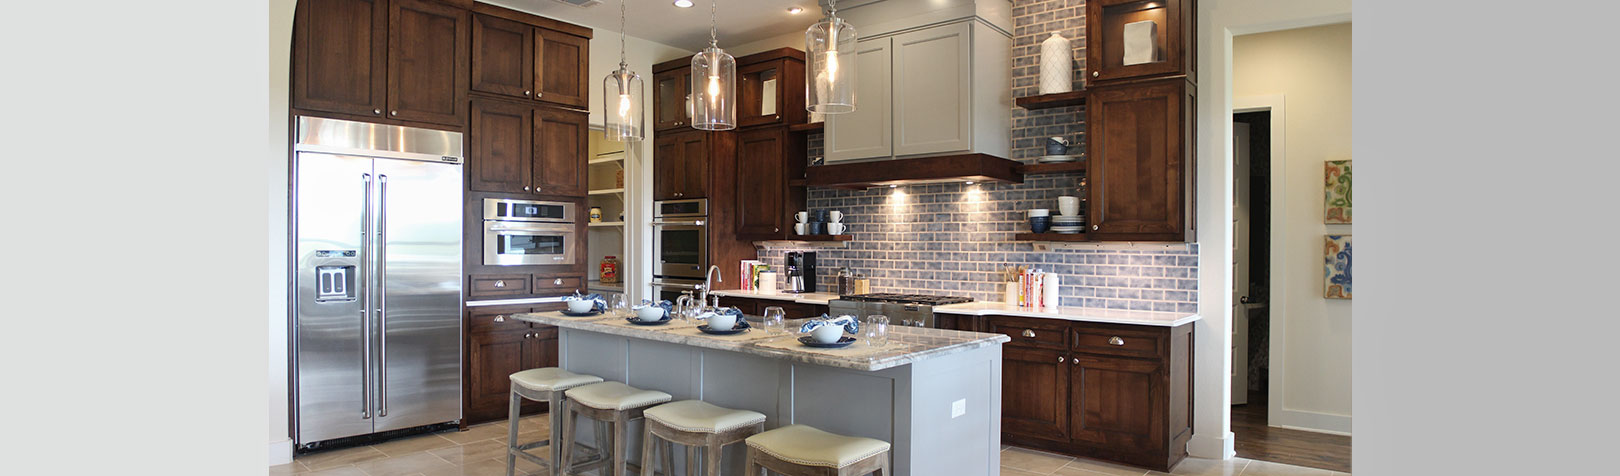 Kitchen with floating shelves and wood and gray painted cabinets by Burrows Cabinets